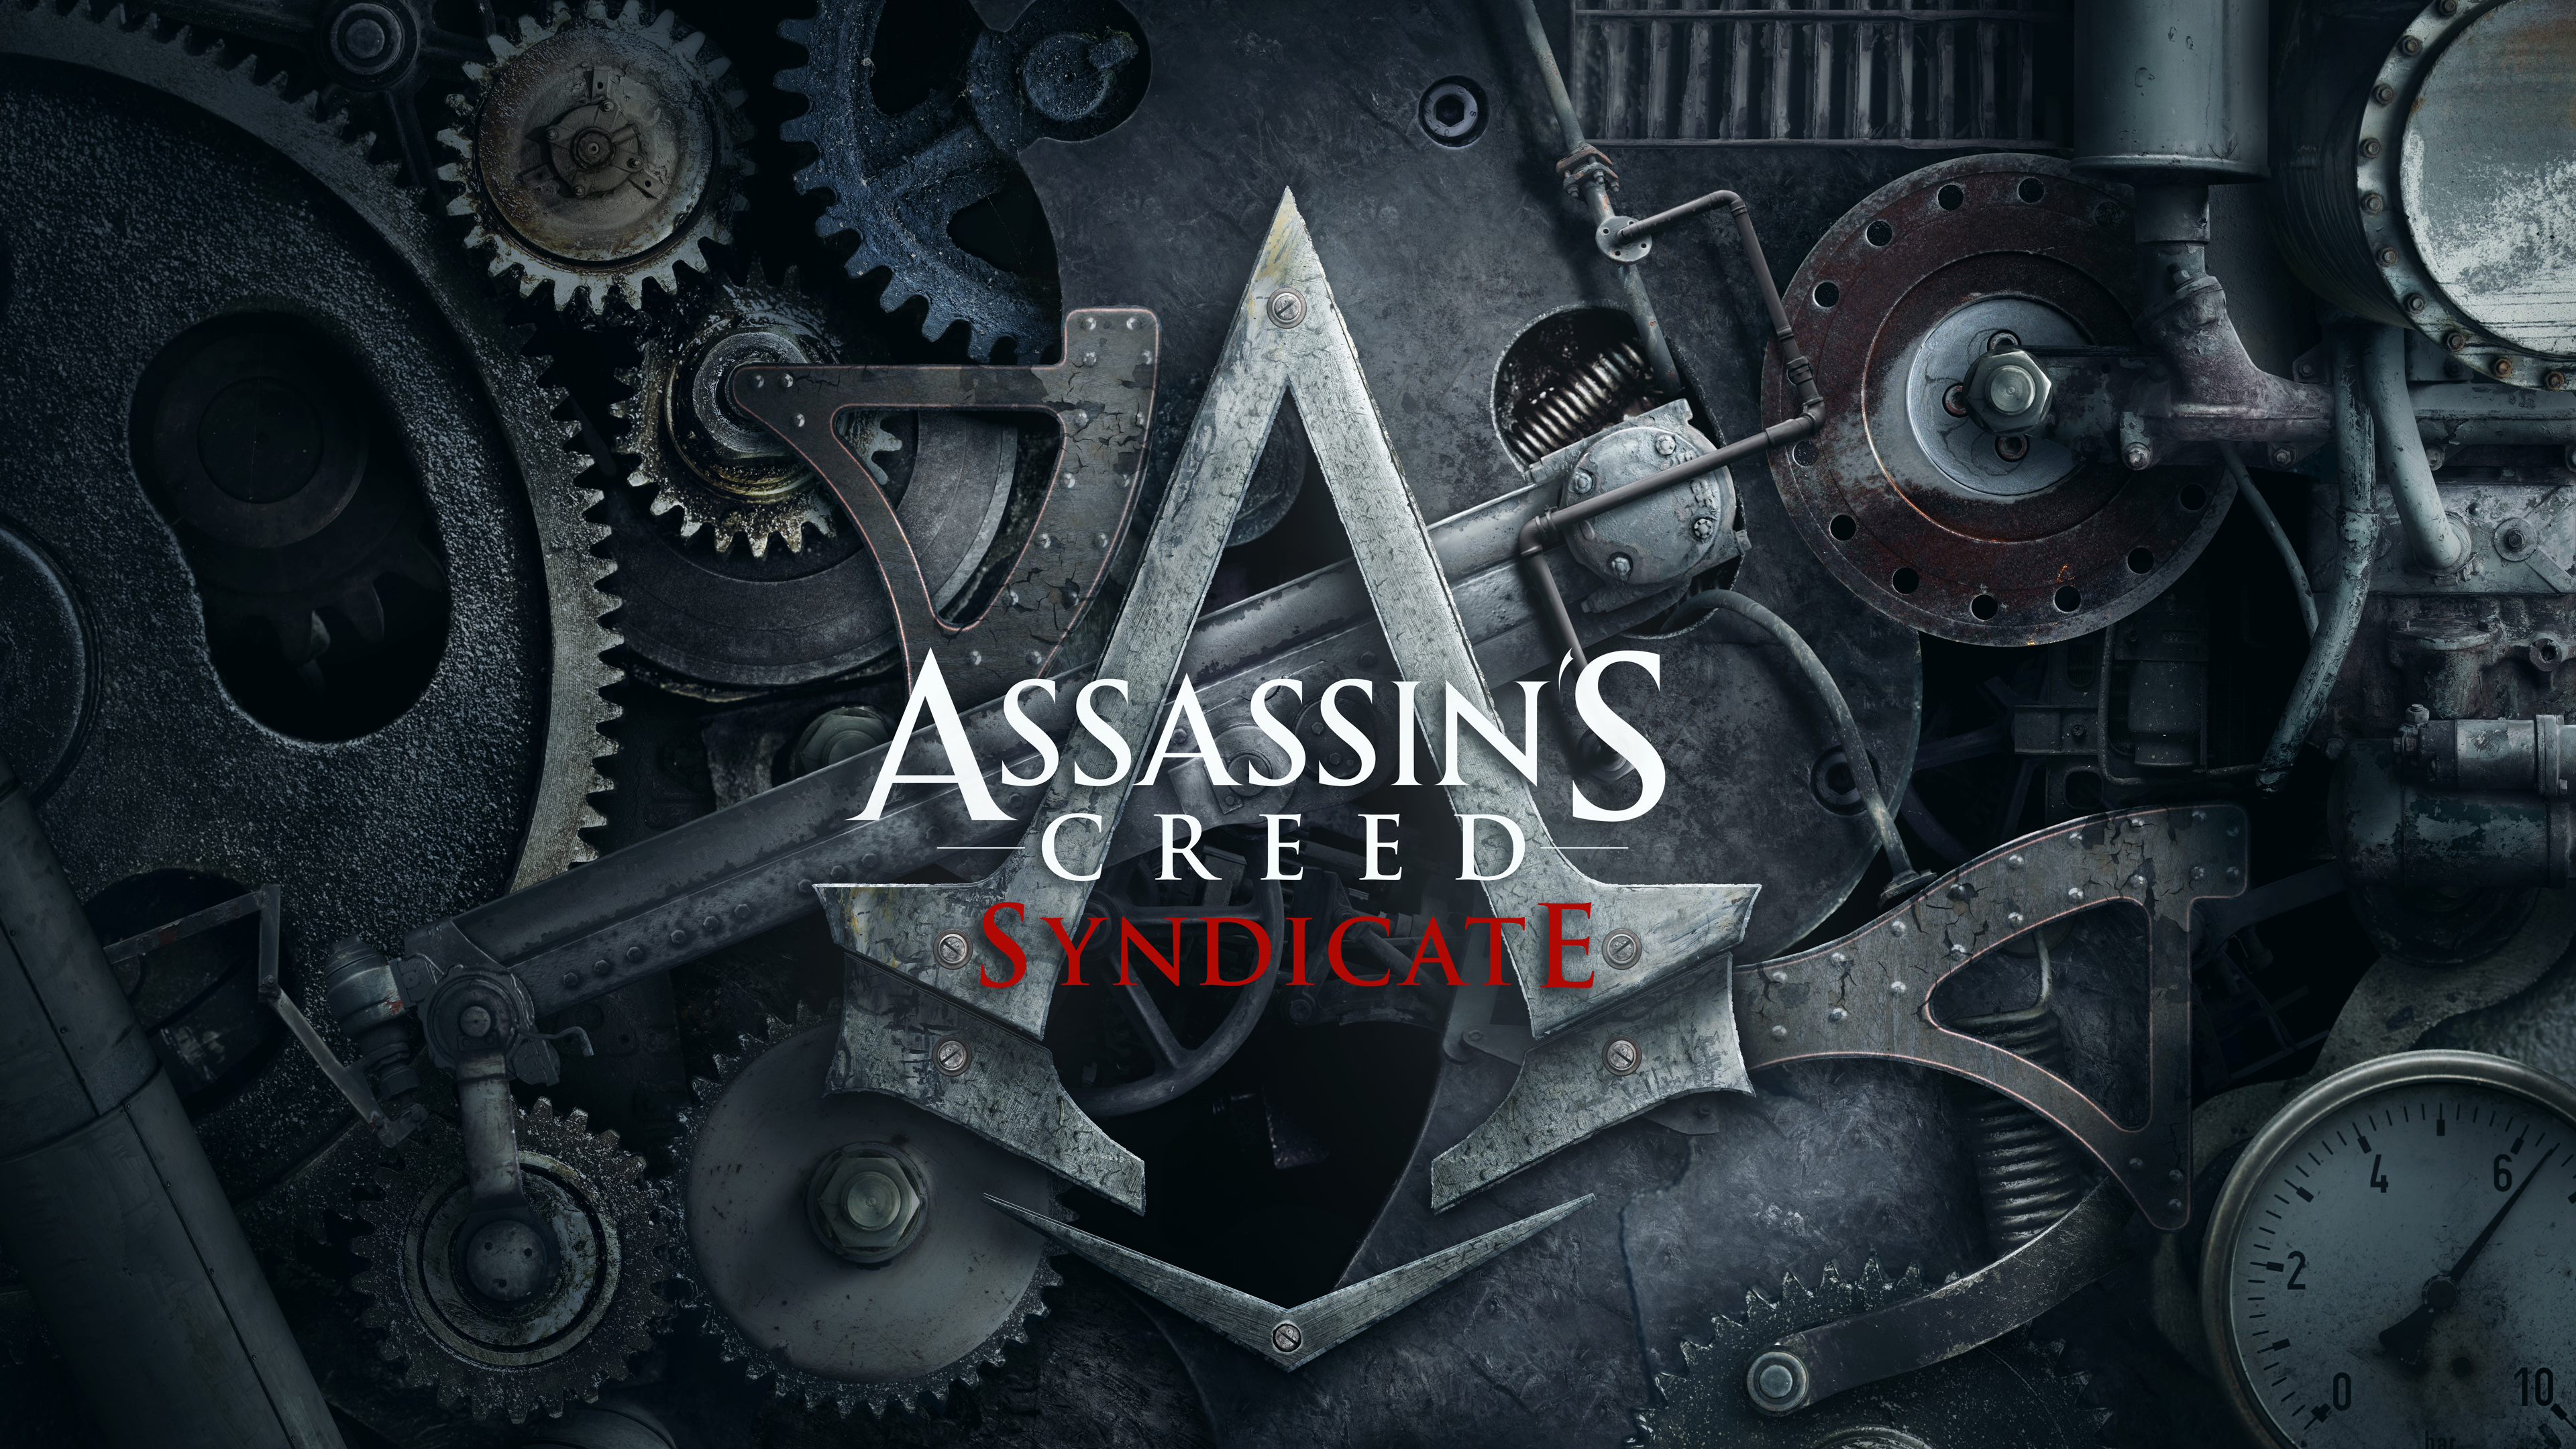 assassins creed syndicate live wallpaper